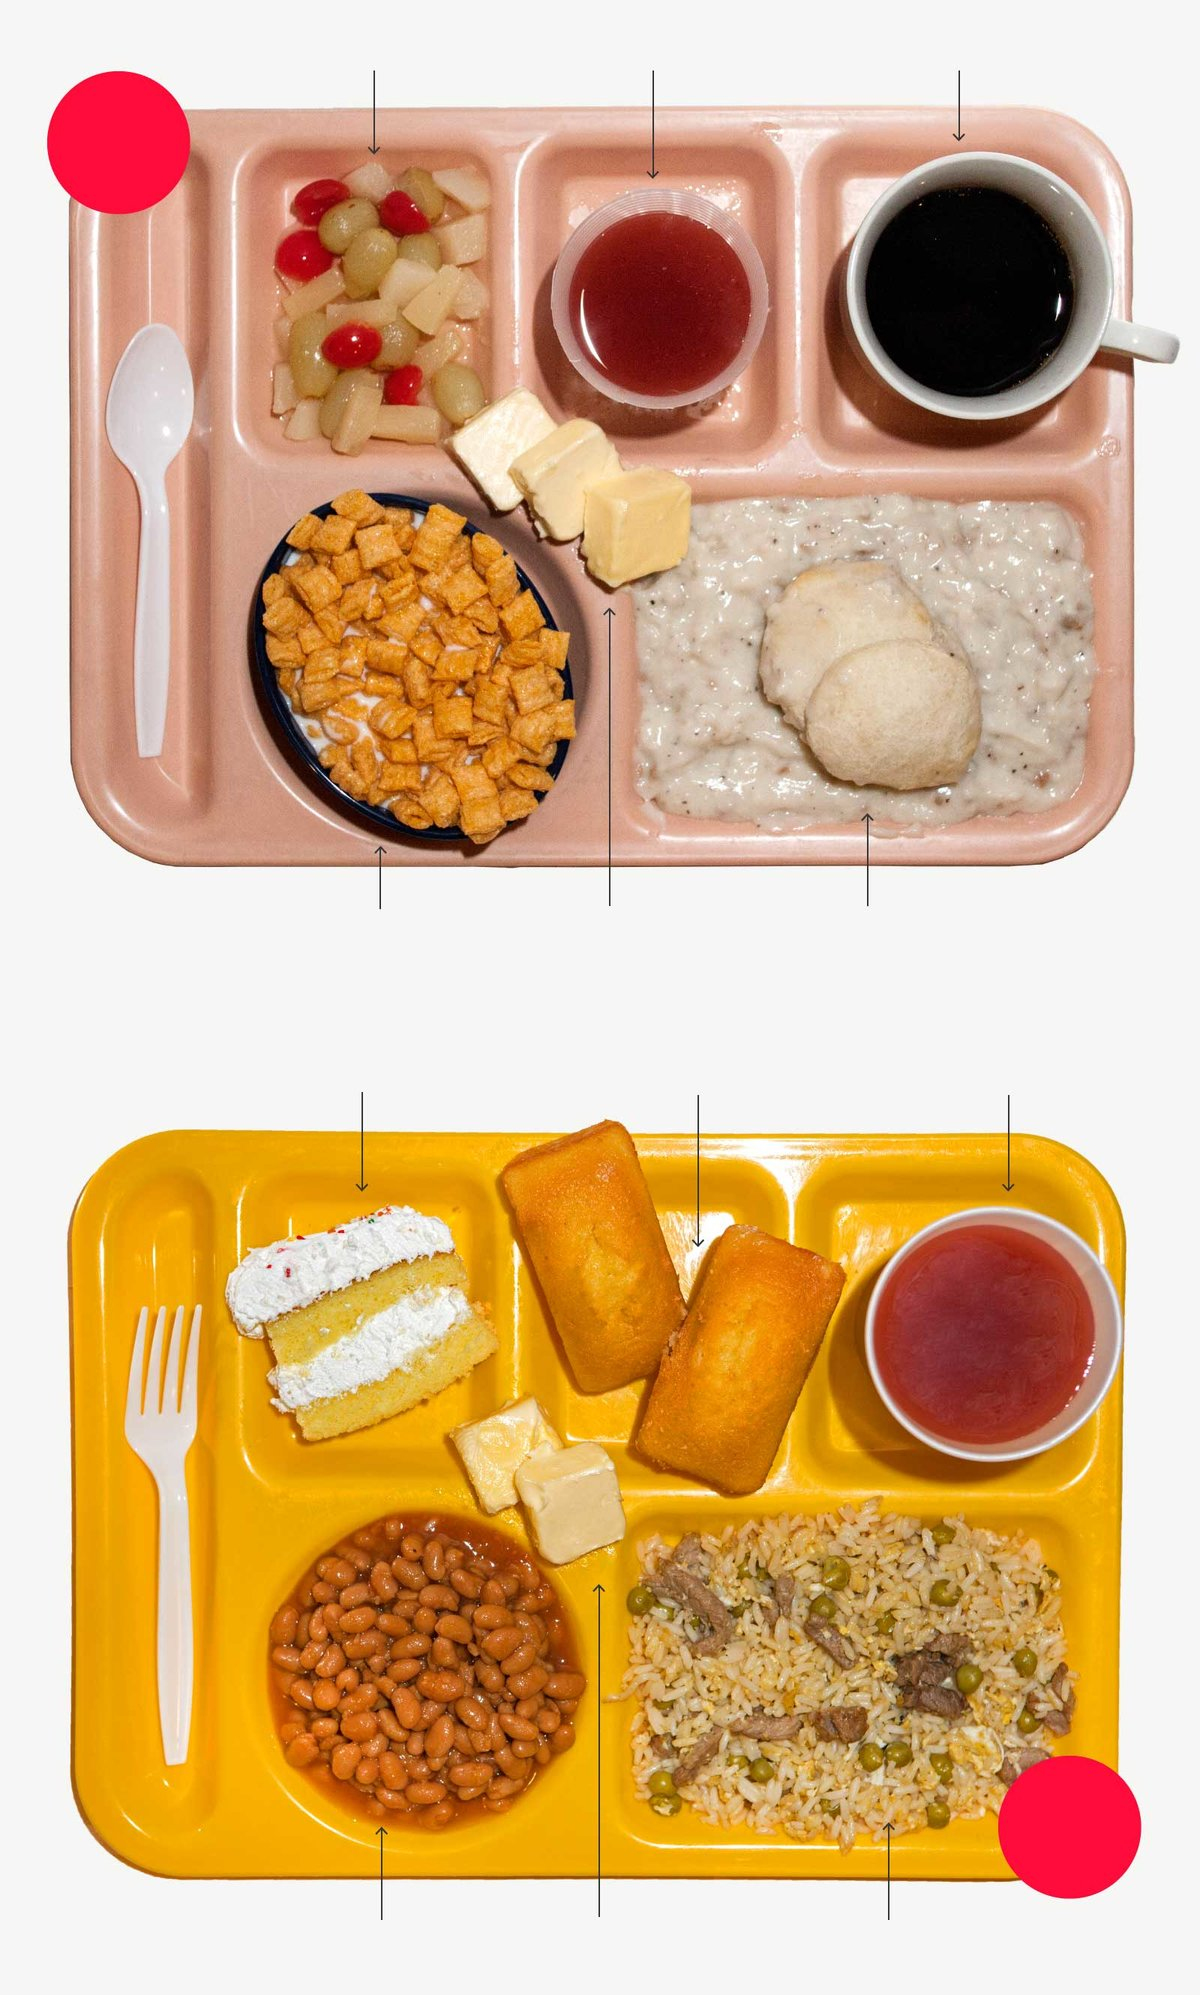 What's in a Prison Meal? | The Marshall Project